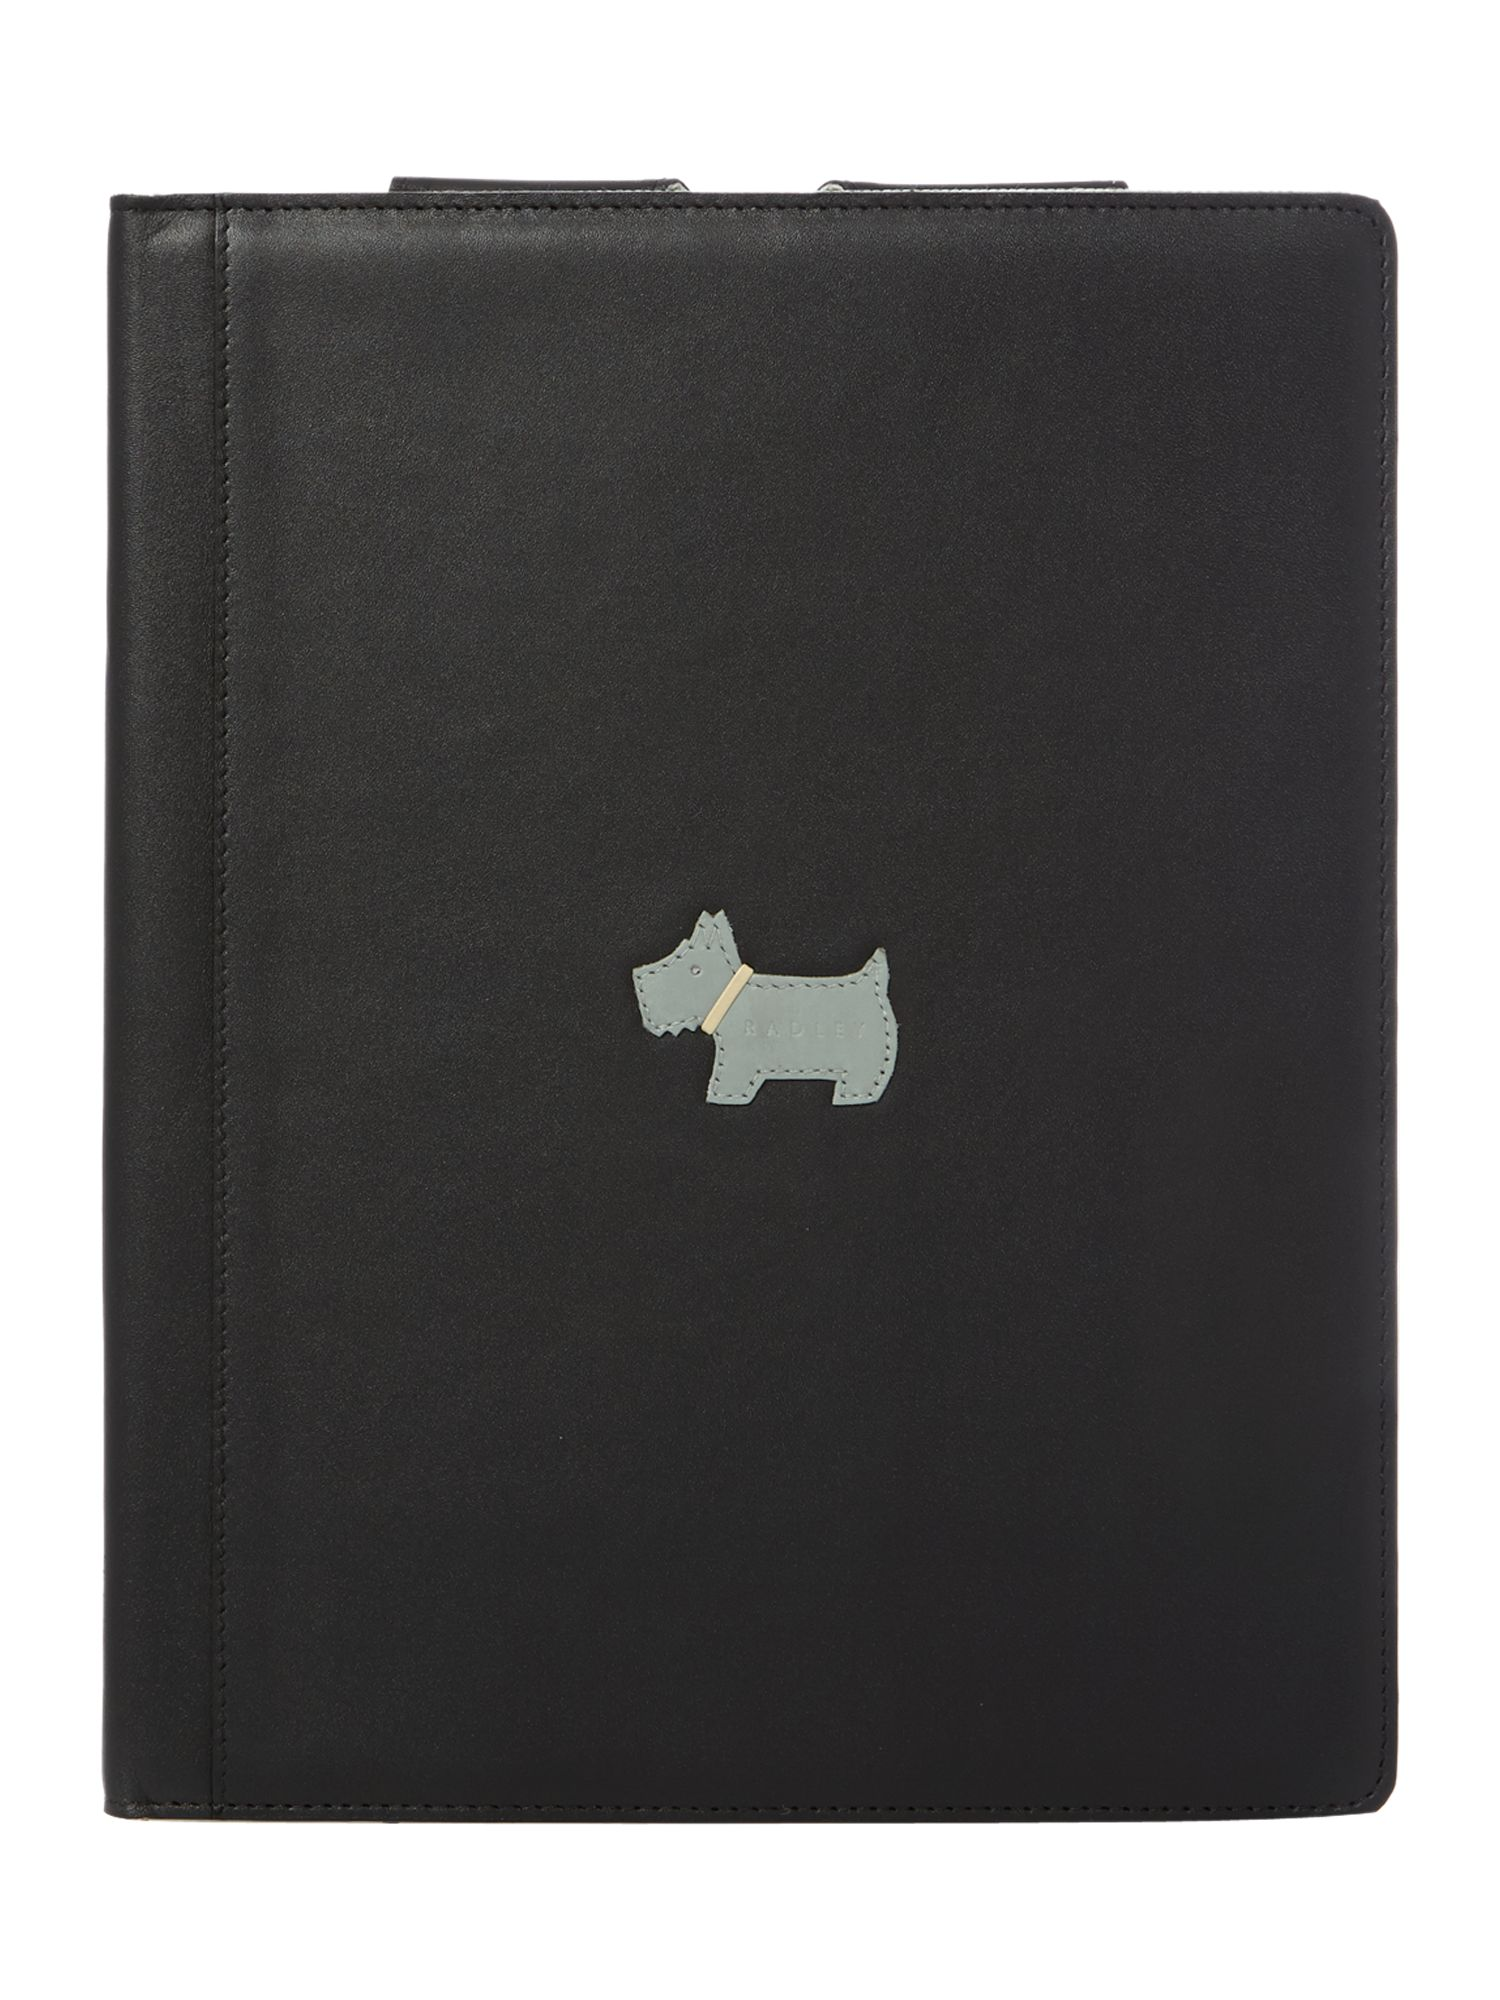 Heritage dog black ipad cover